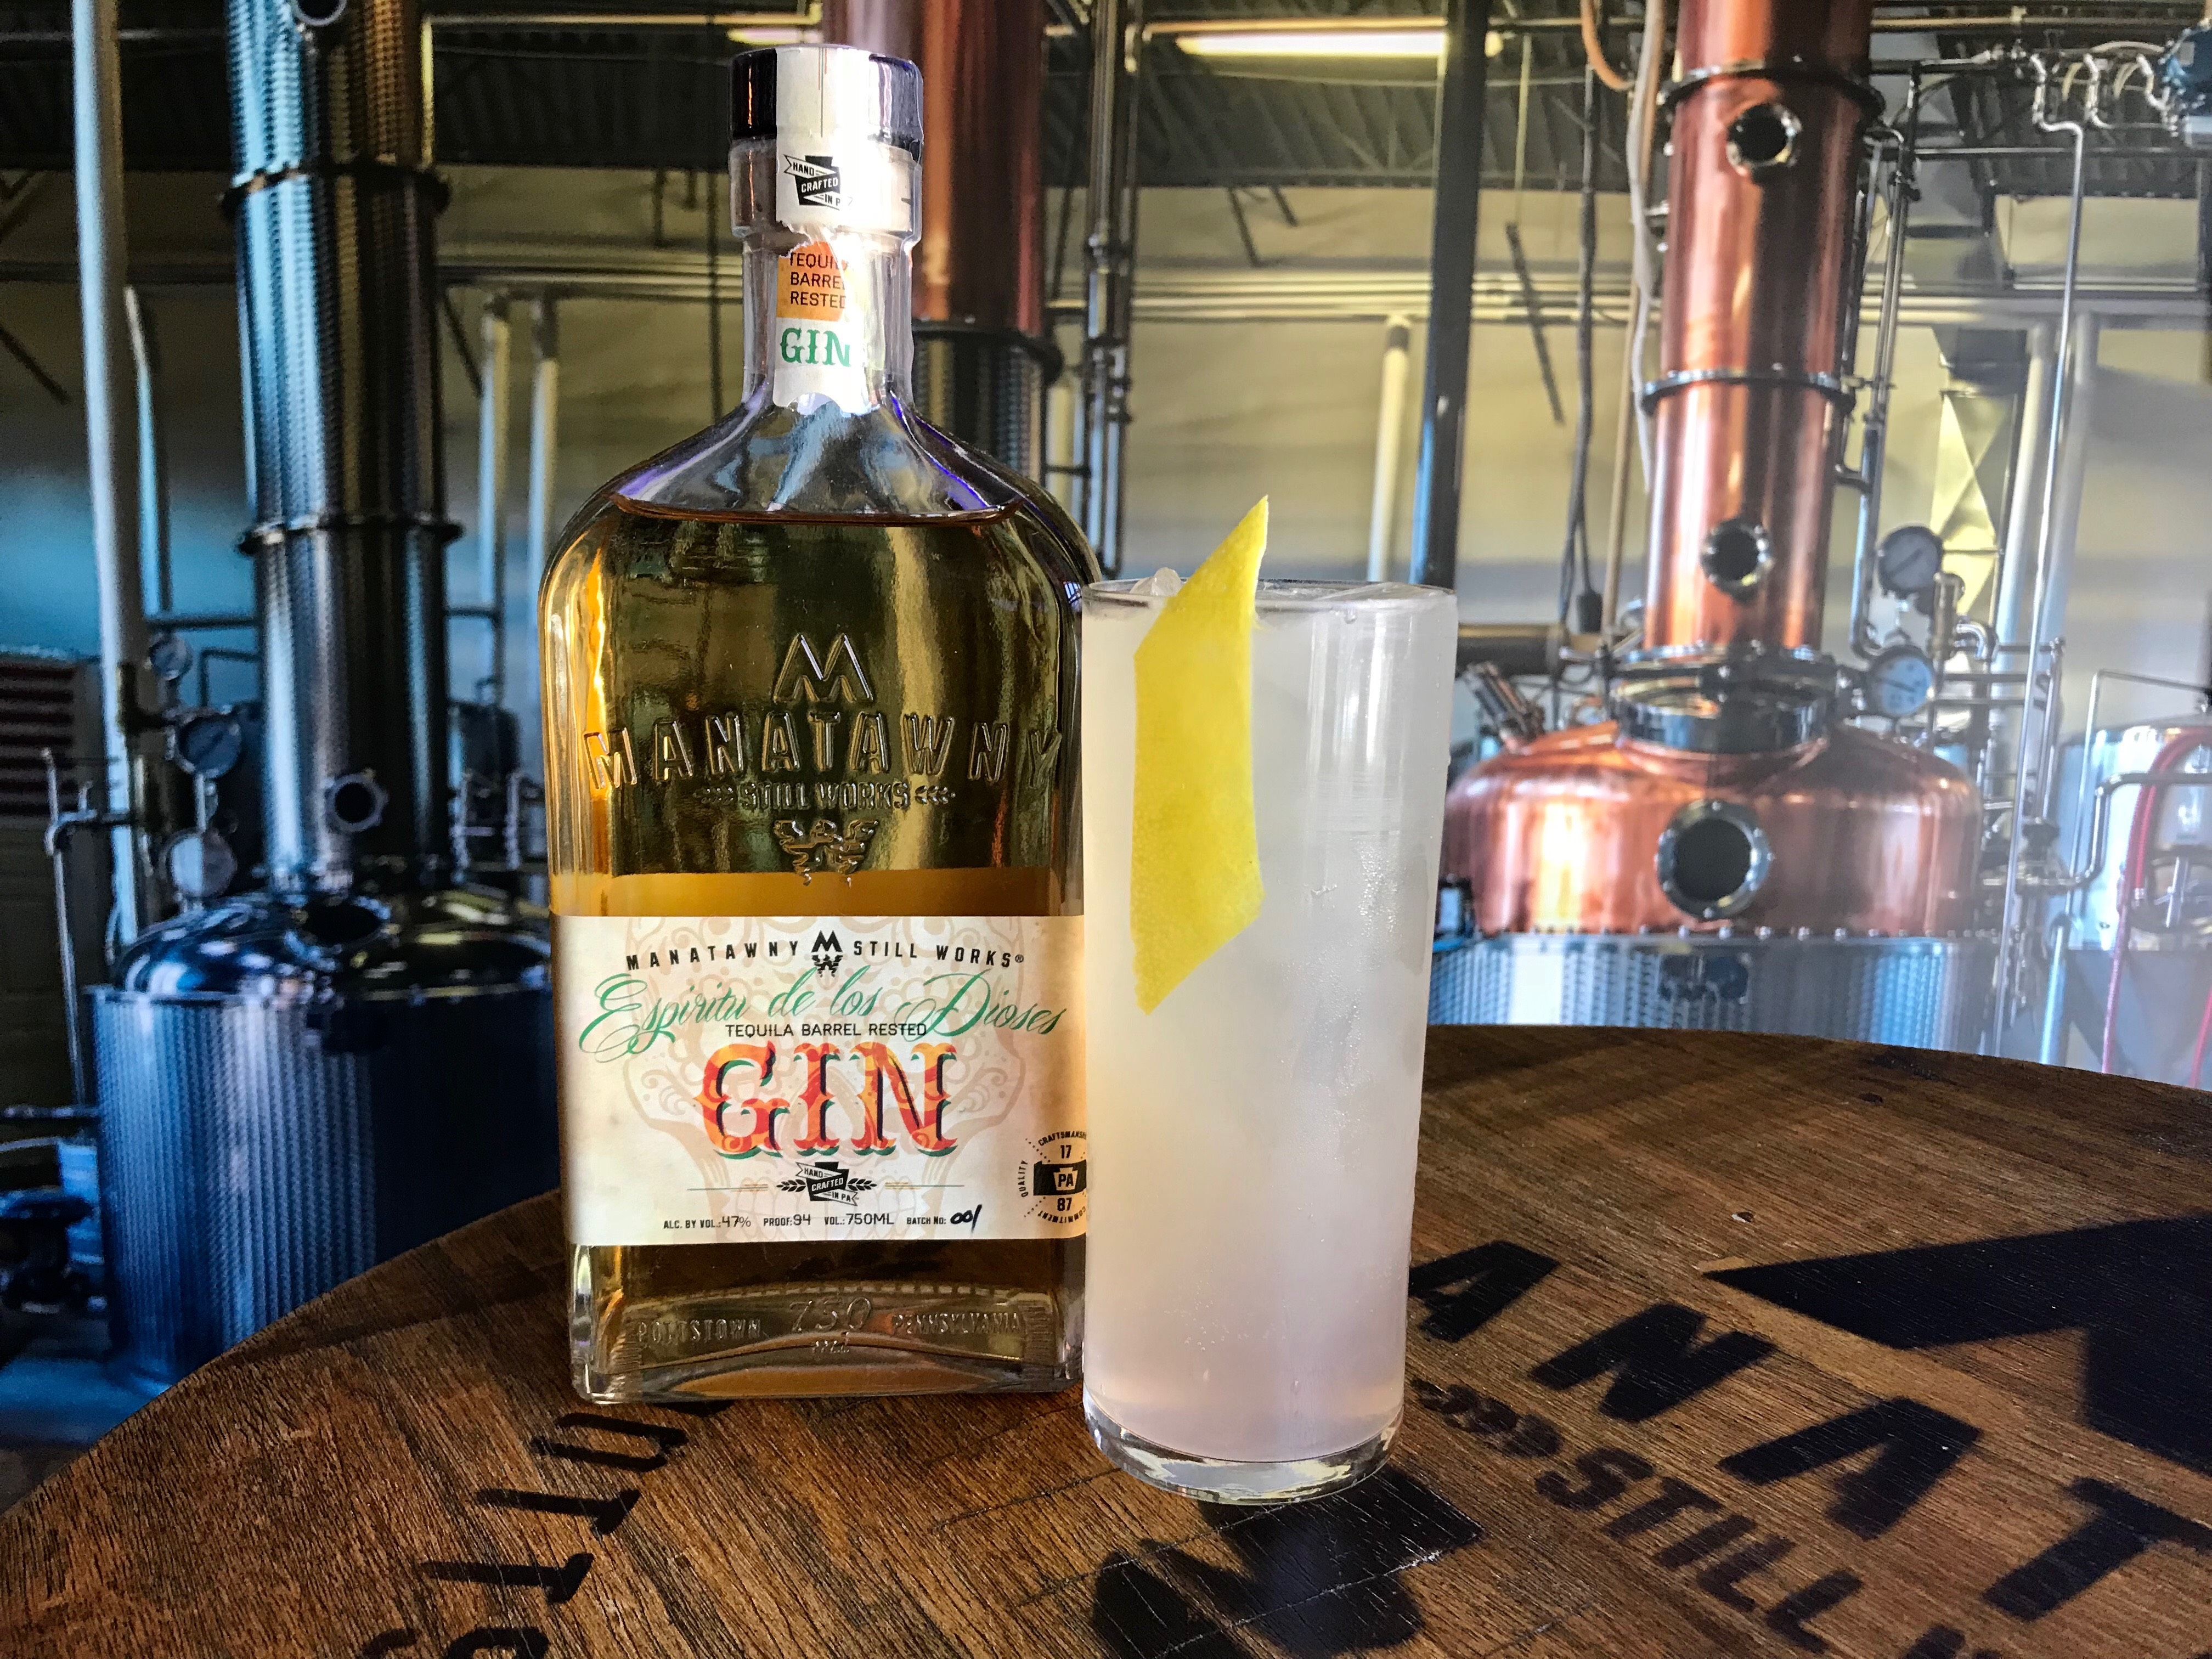 On Cinco de Mayo, Manatawny Still Works is offering drink specials, including this $10 Tequila Paloma made with their housemade Espirtu de los Dioses (tequila barrel-rested Odd Fellows gin).